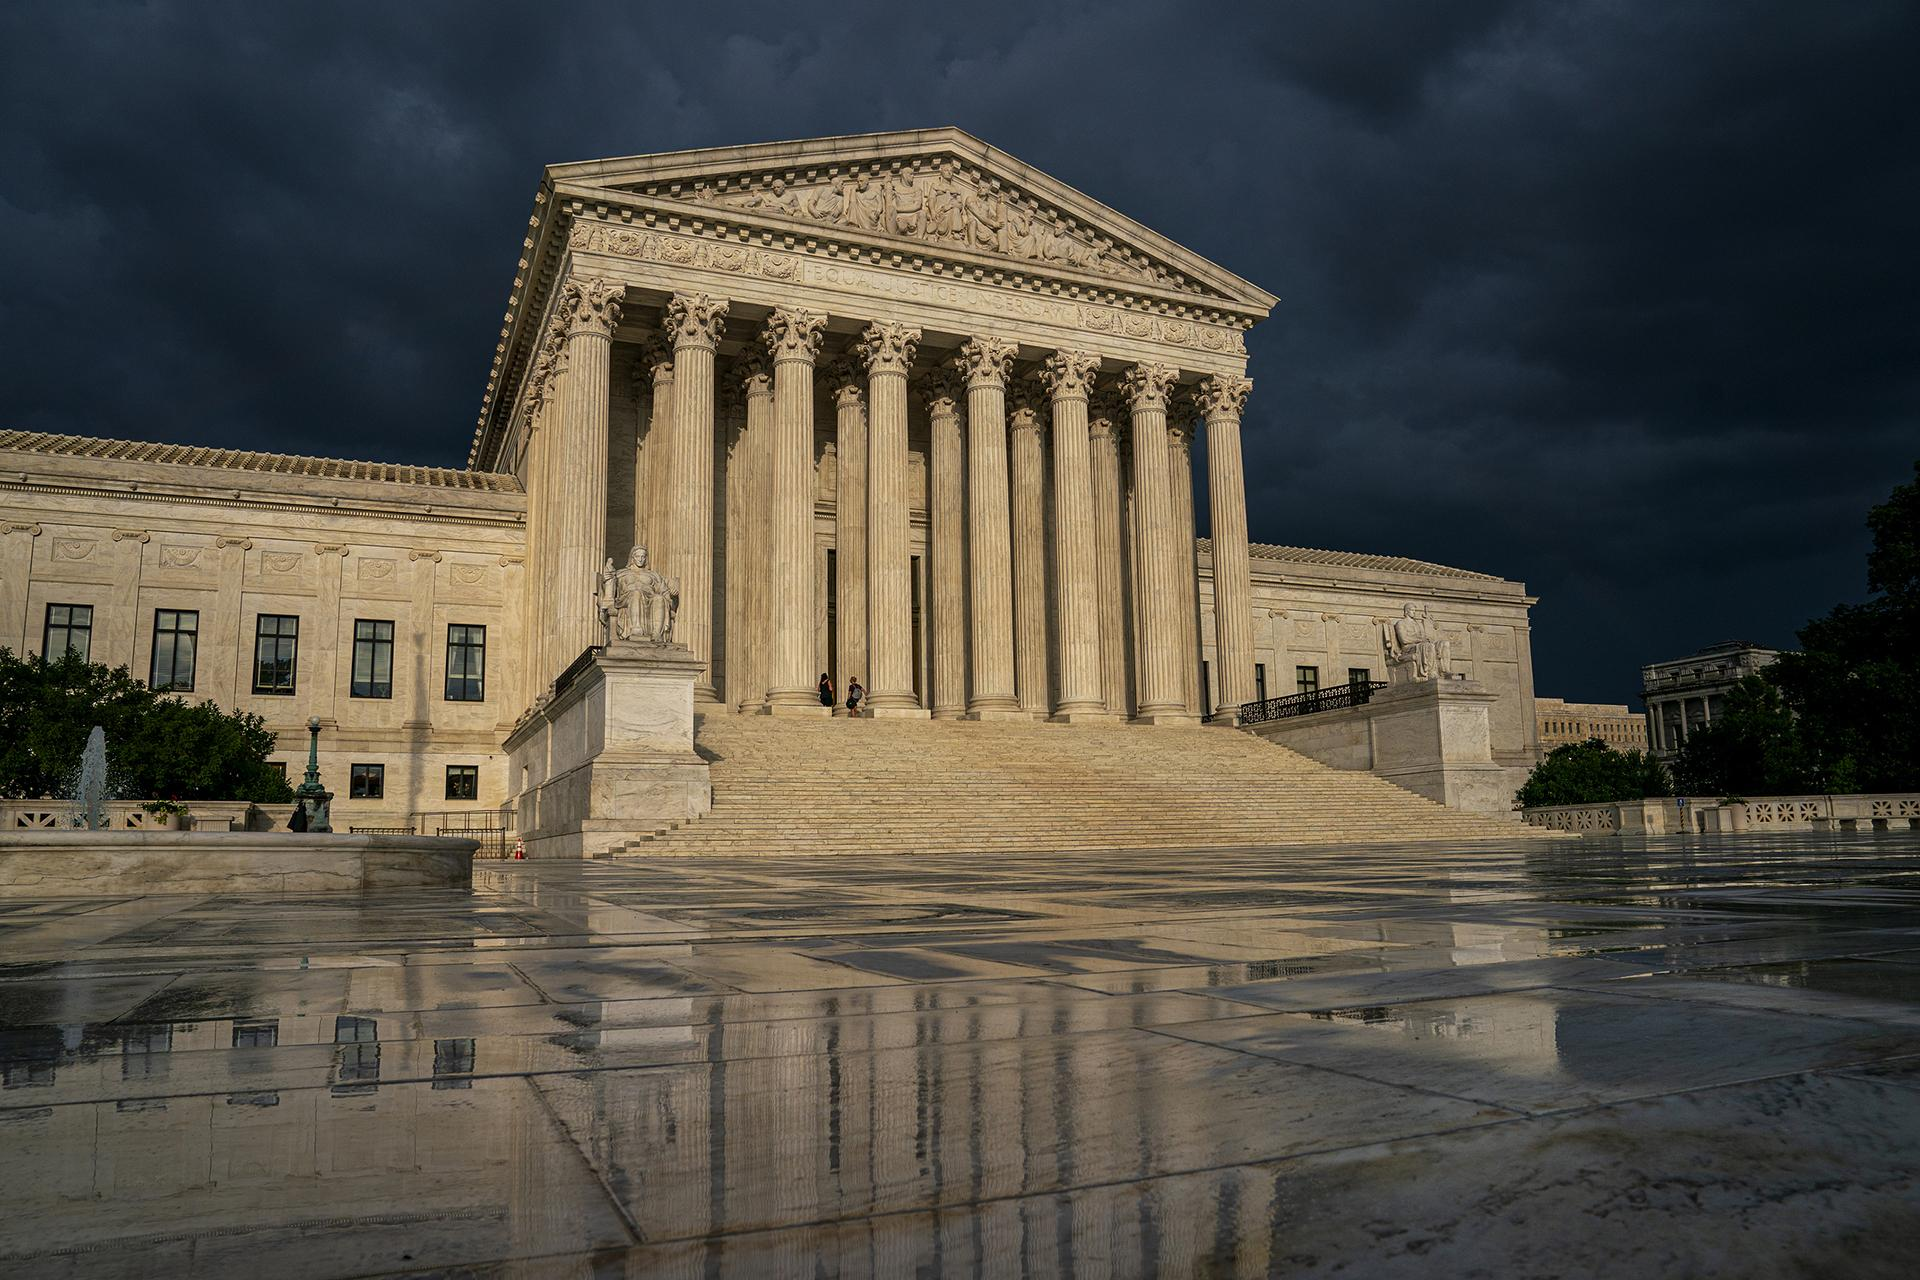 In this June 20, 2019 file photo, the Supreme Court is seen under stormy skies in Washington. (AP Photo / J. Scott Applewhite, File)